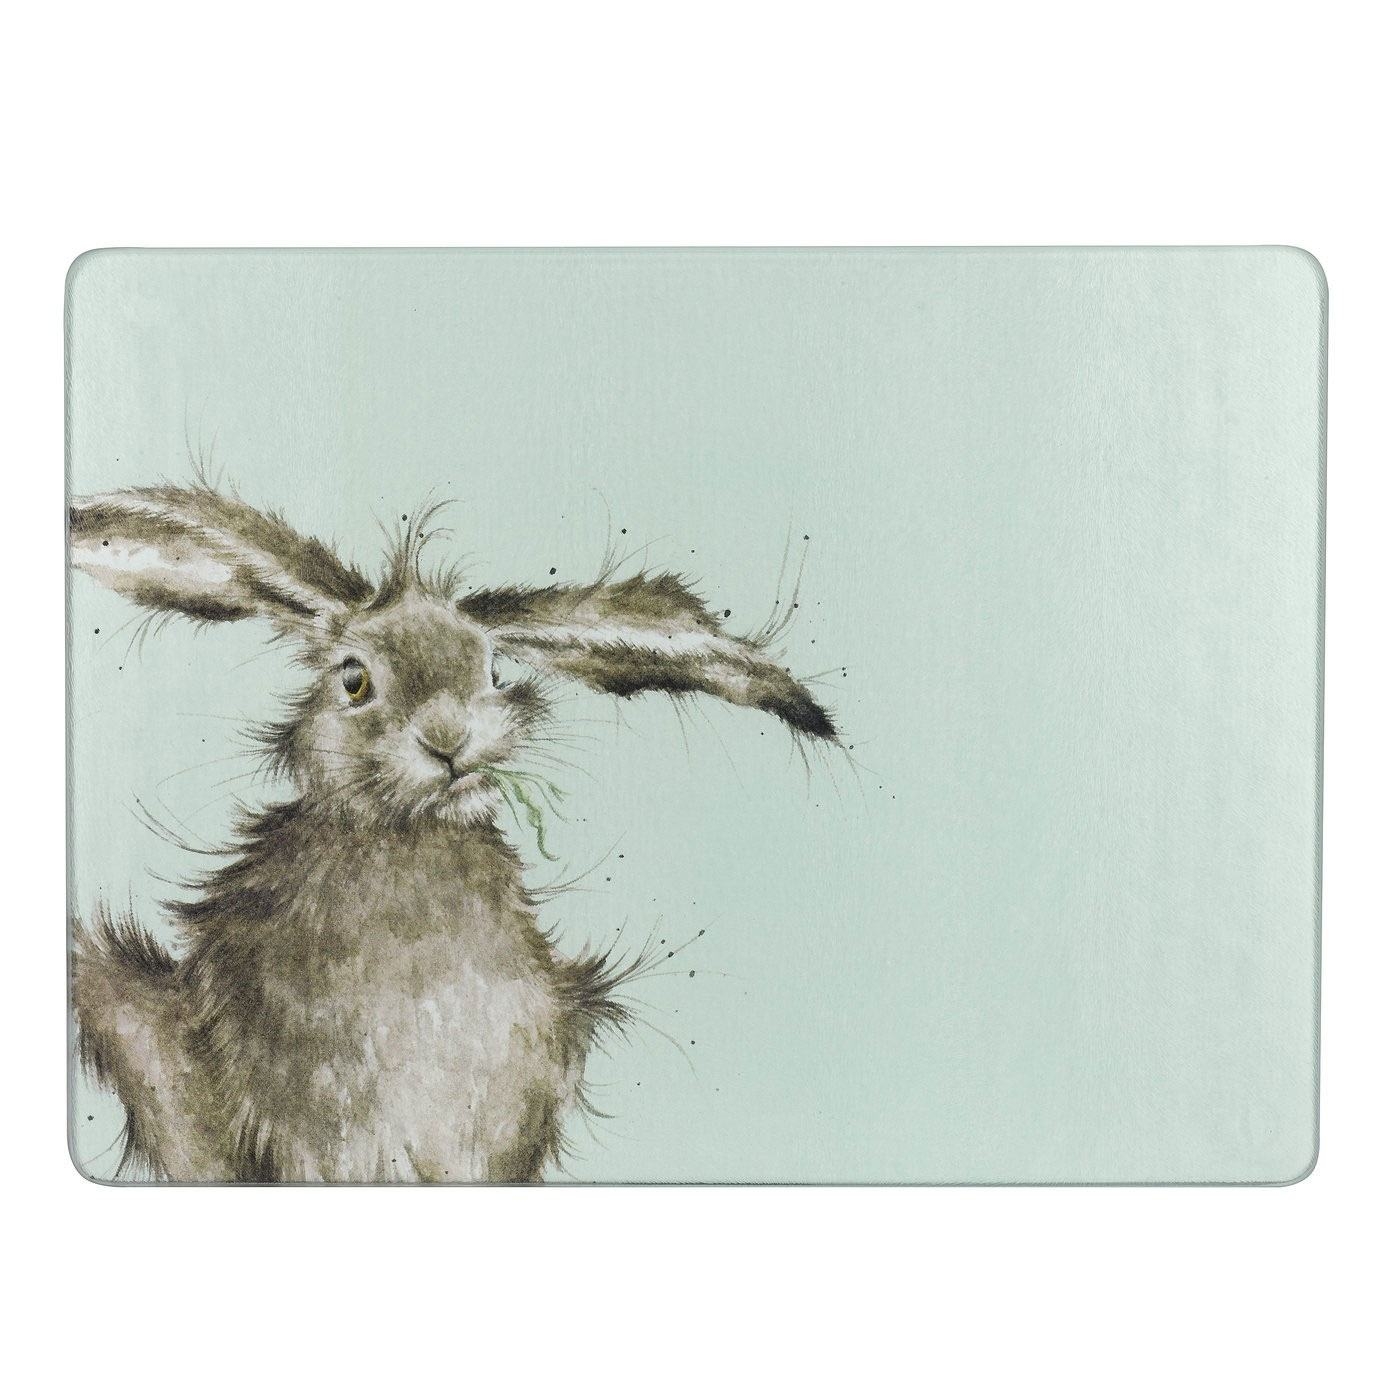 Wrendale Hare Glass Worktop Saver | Temptation Gifts